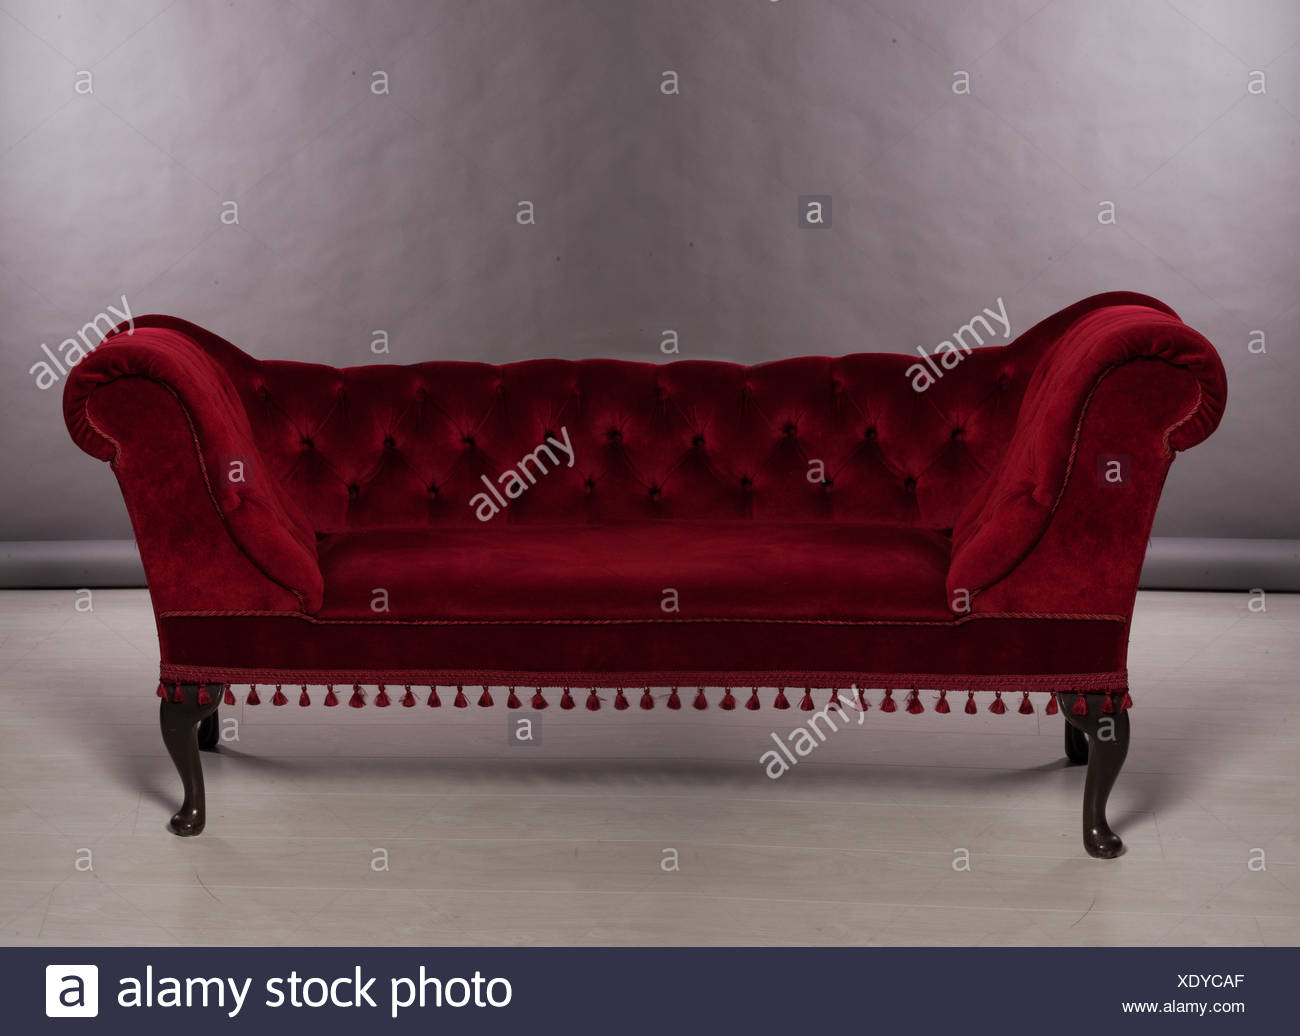 Upholstered Chesterfield Sofa   Stock Image